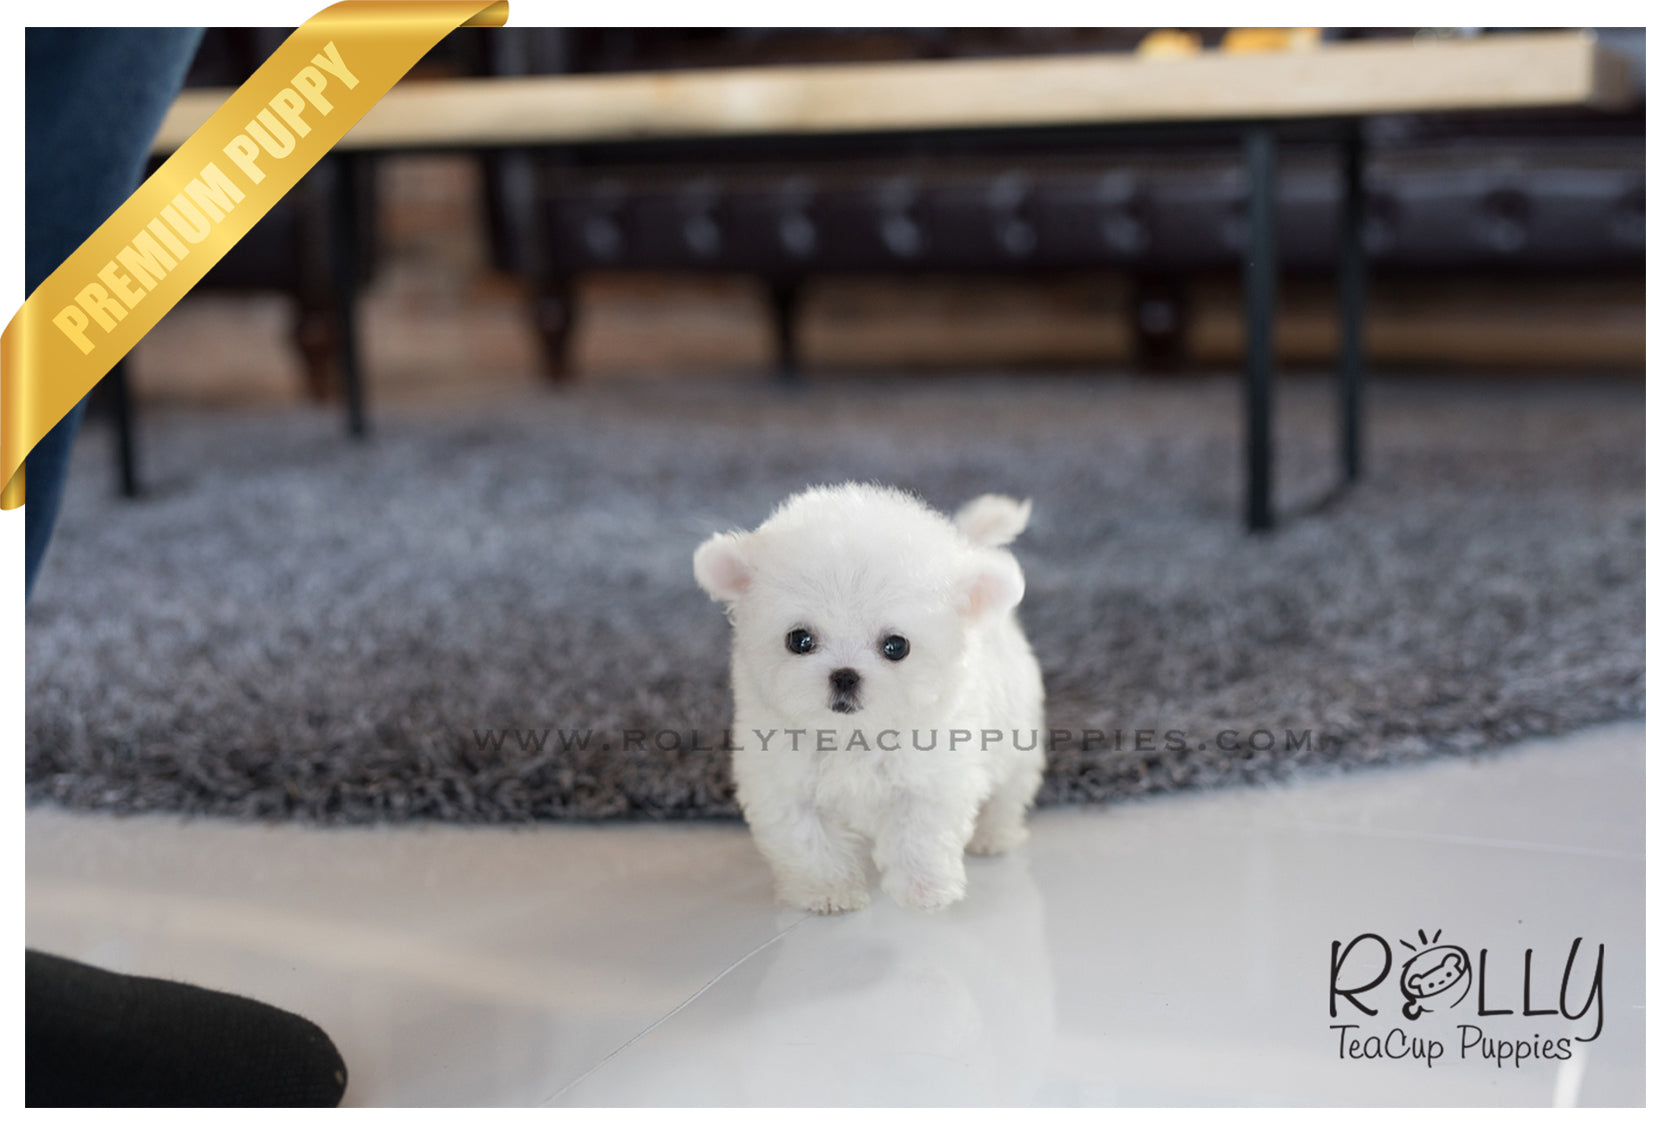 (Sold to Fernandez) Kenya - Bichon. F- Rolly Teacup Puppies